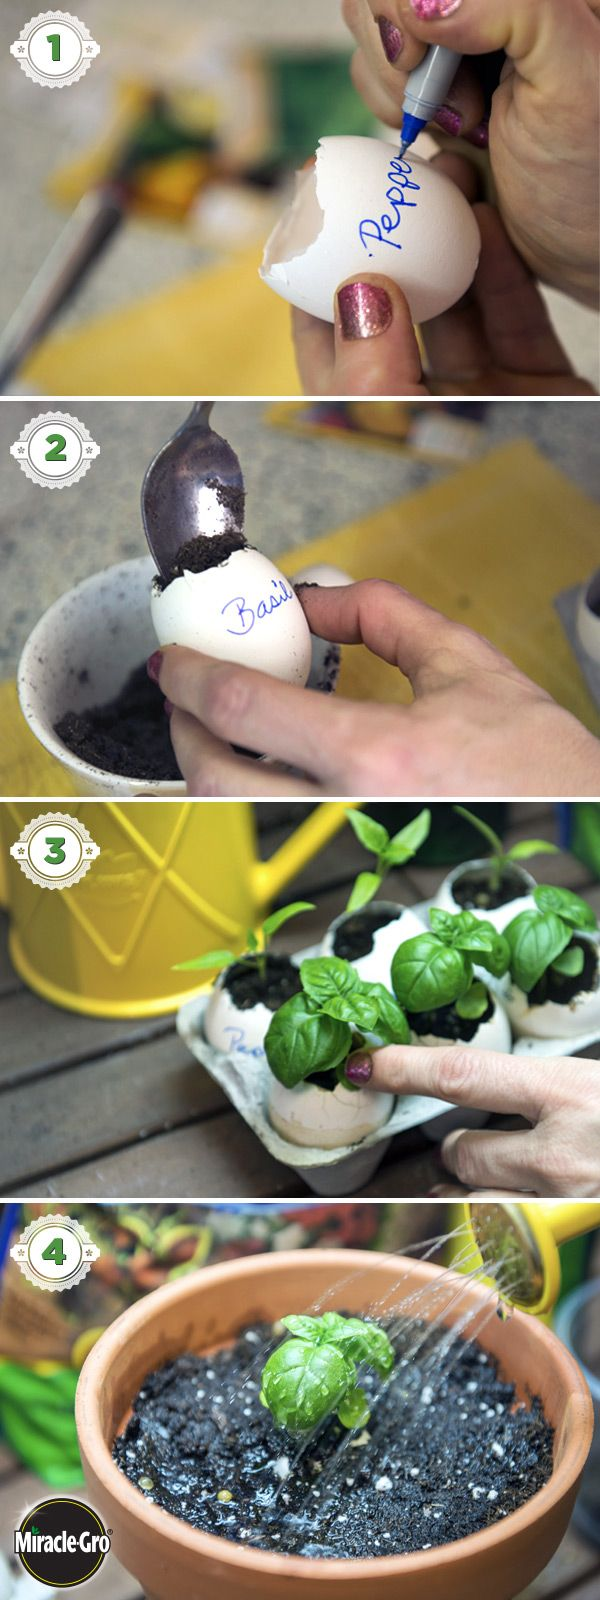 Learn how to grow your own seeds indoors using eggshells in this simple, DIY…